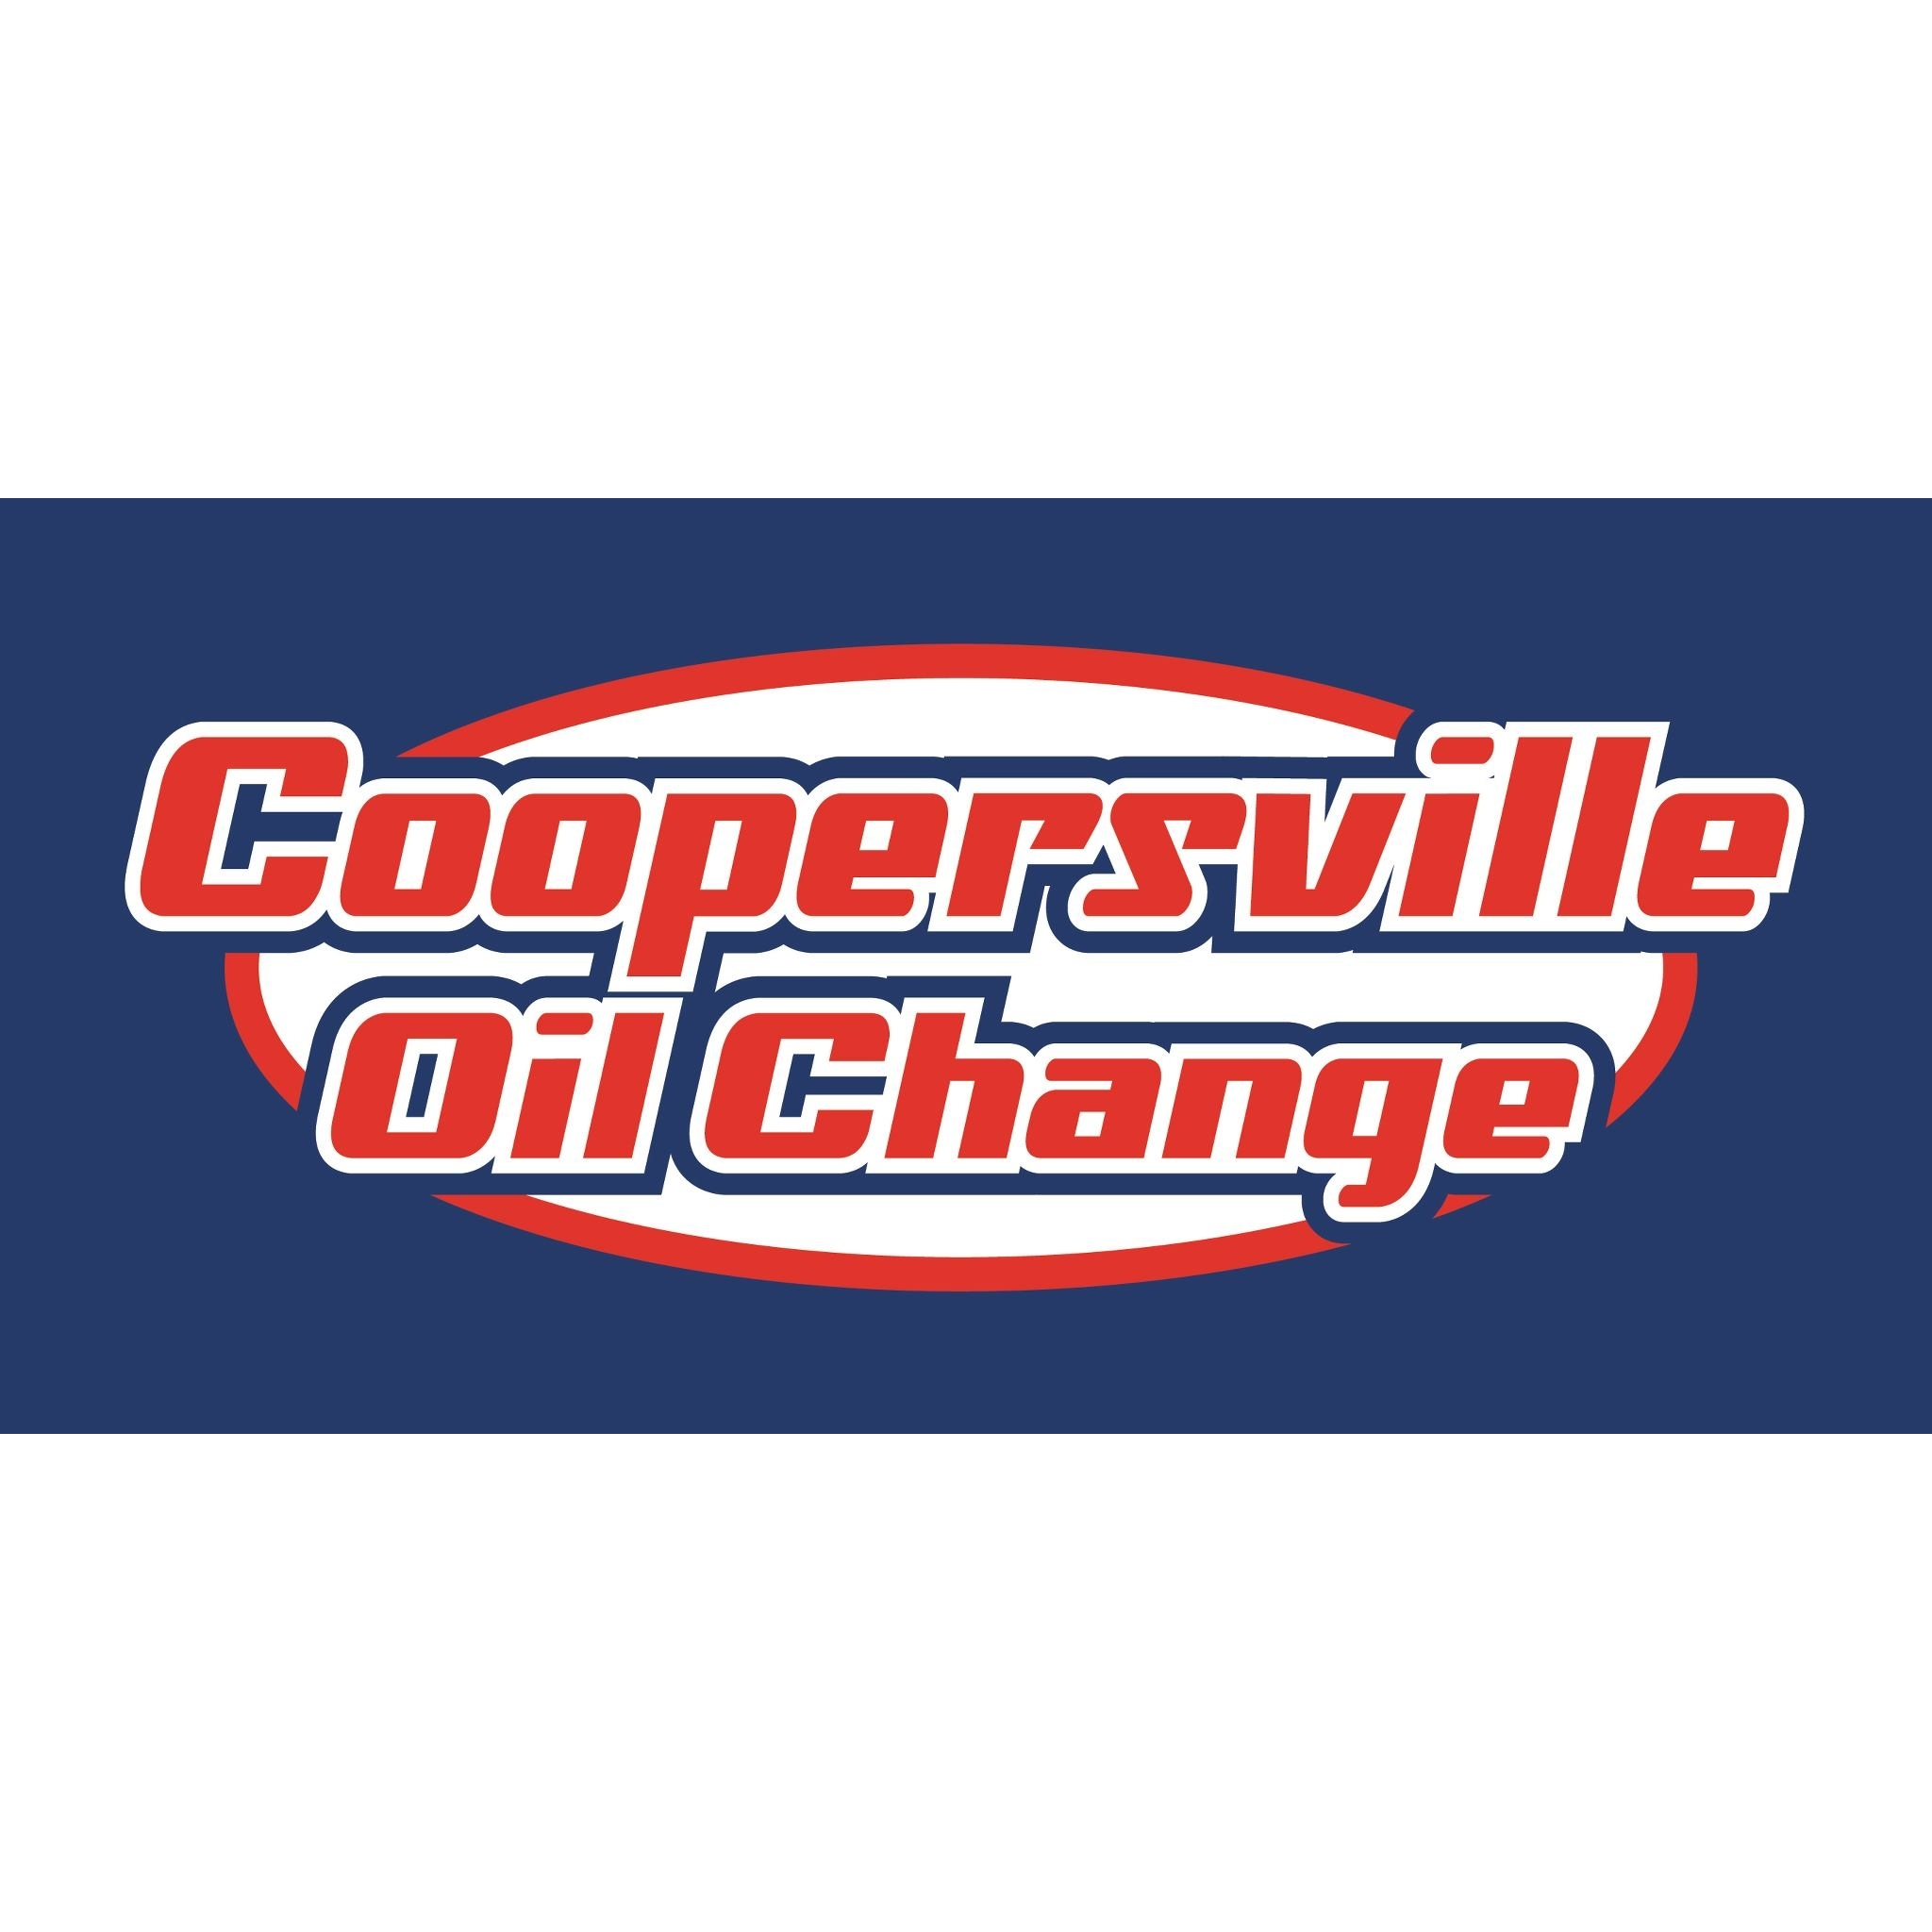 Coopersville Oil Change & Tires image 4